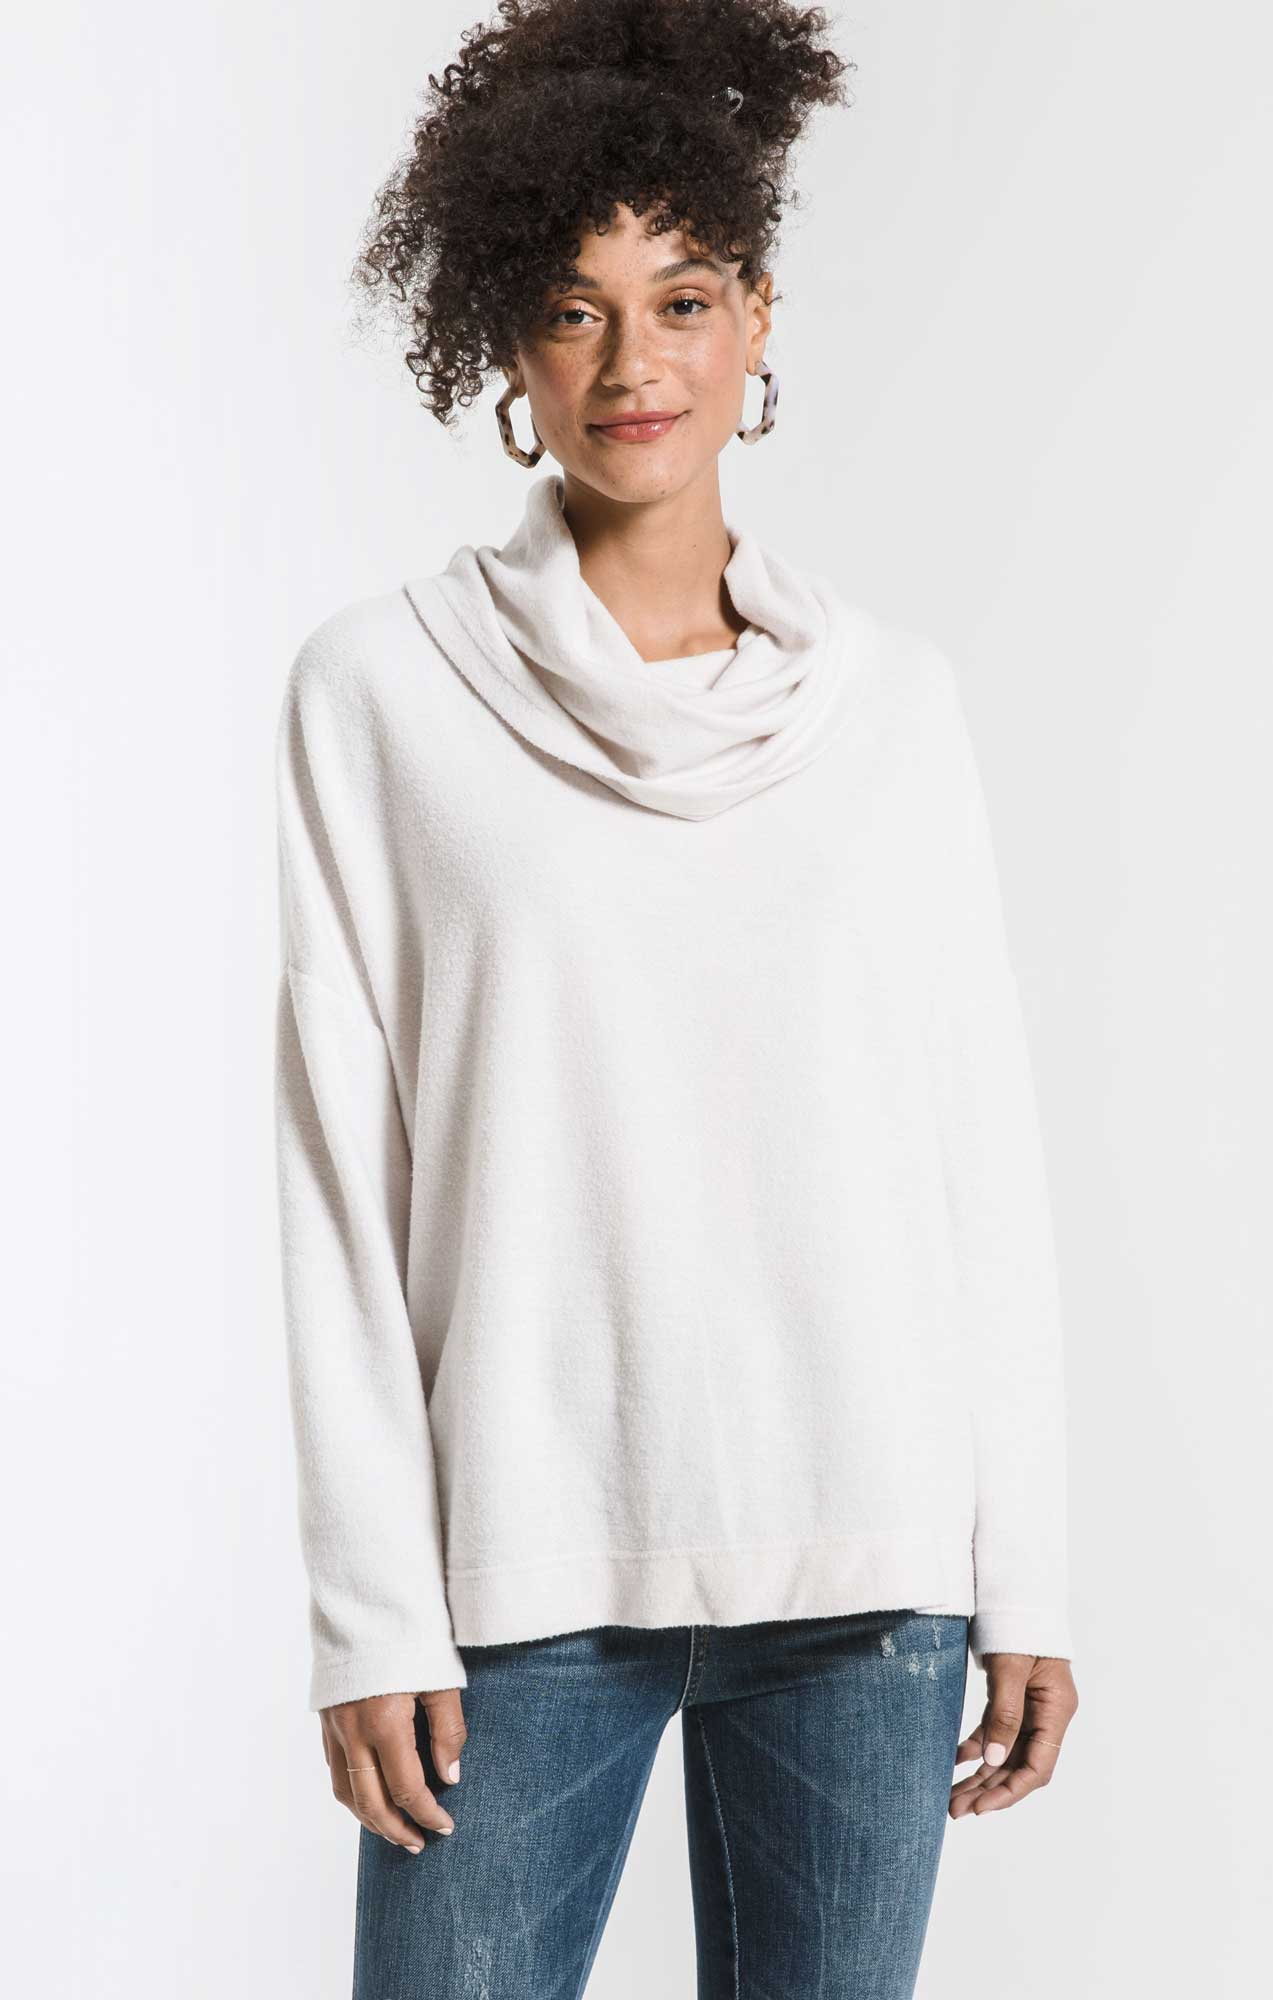 Tops The Fleece Scallop Back Top Champagne Mist